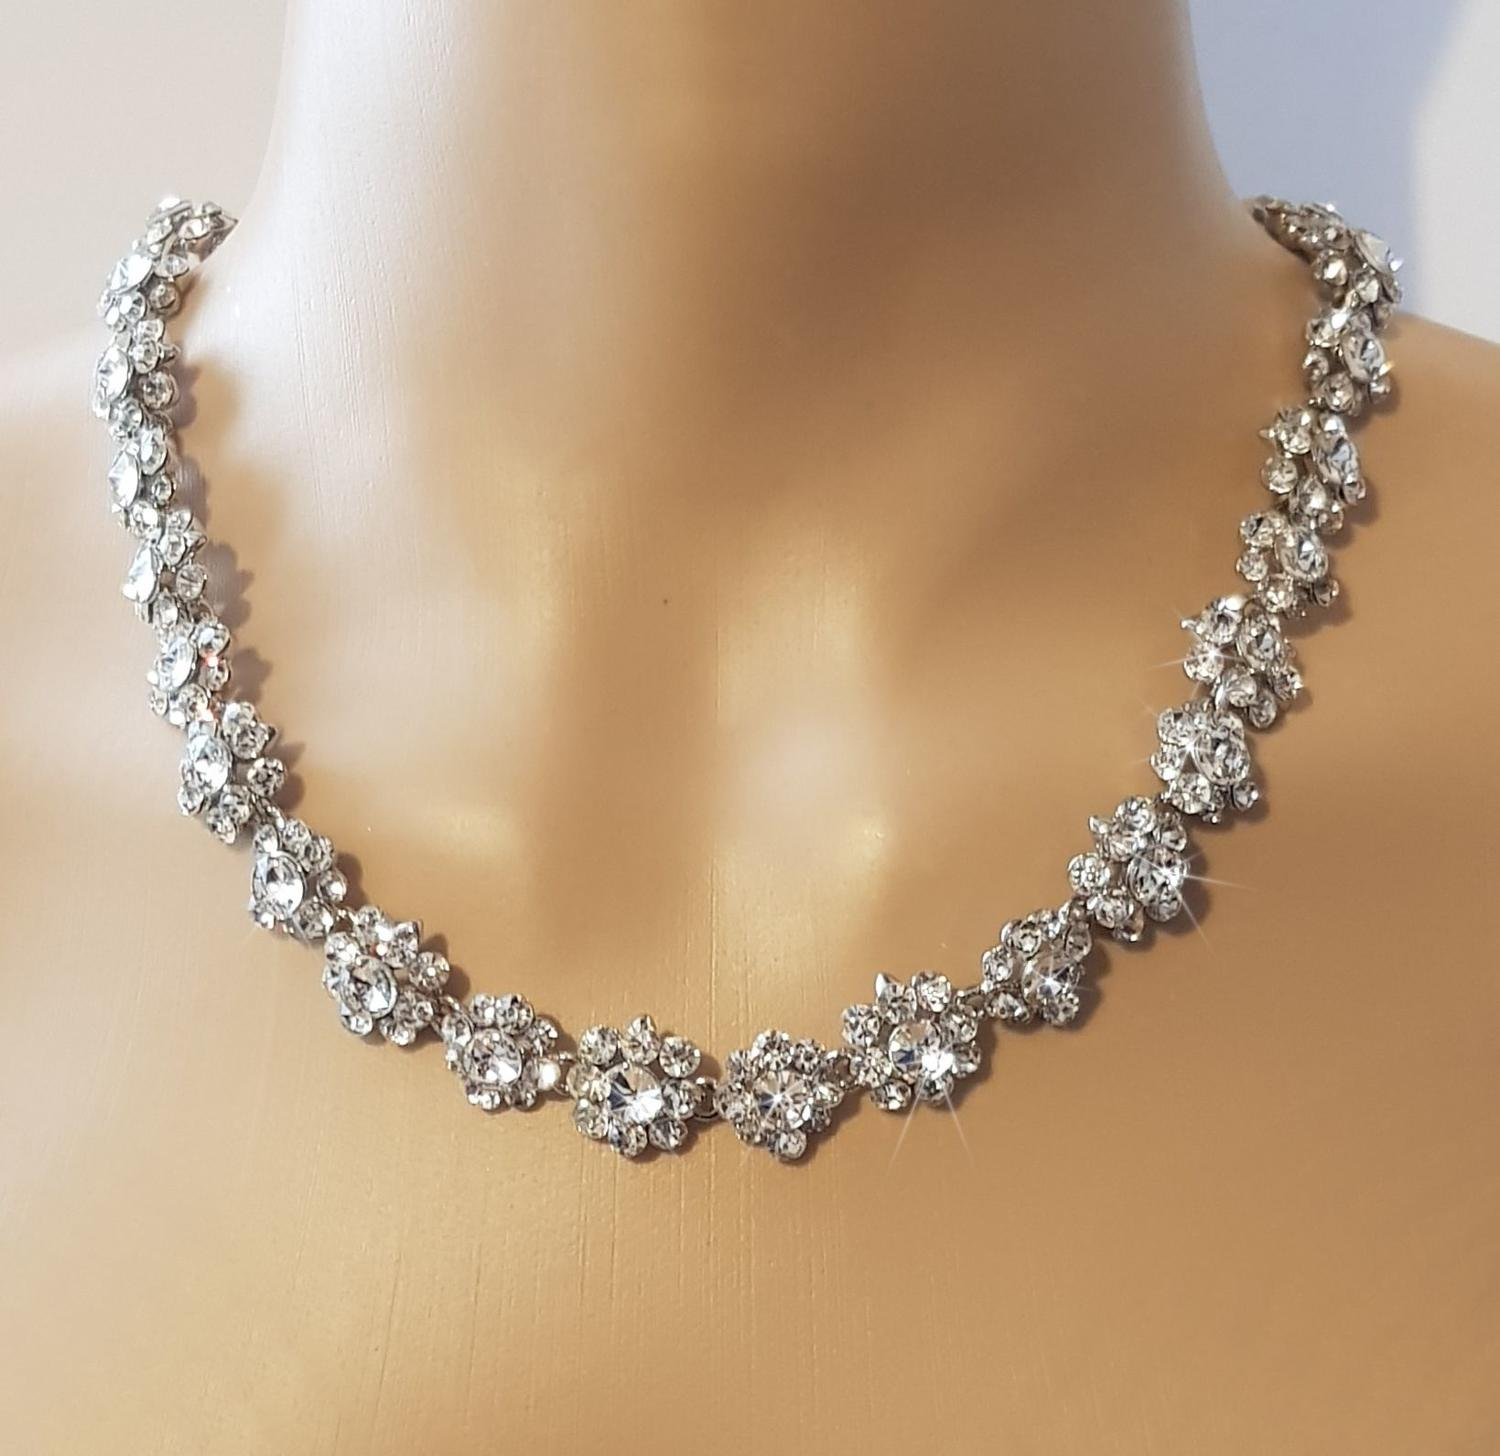 Flower Crystal Necklace & Earrings Set